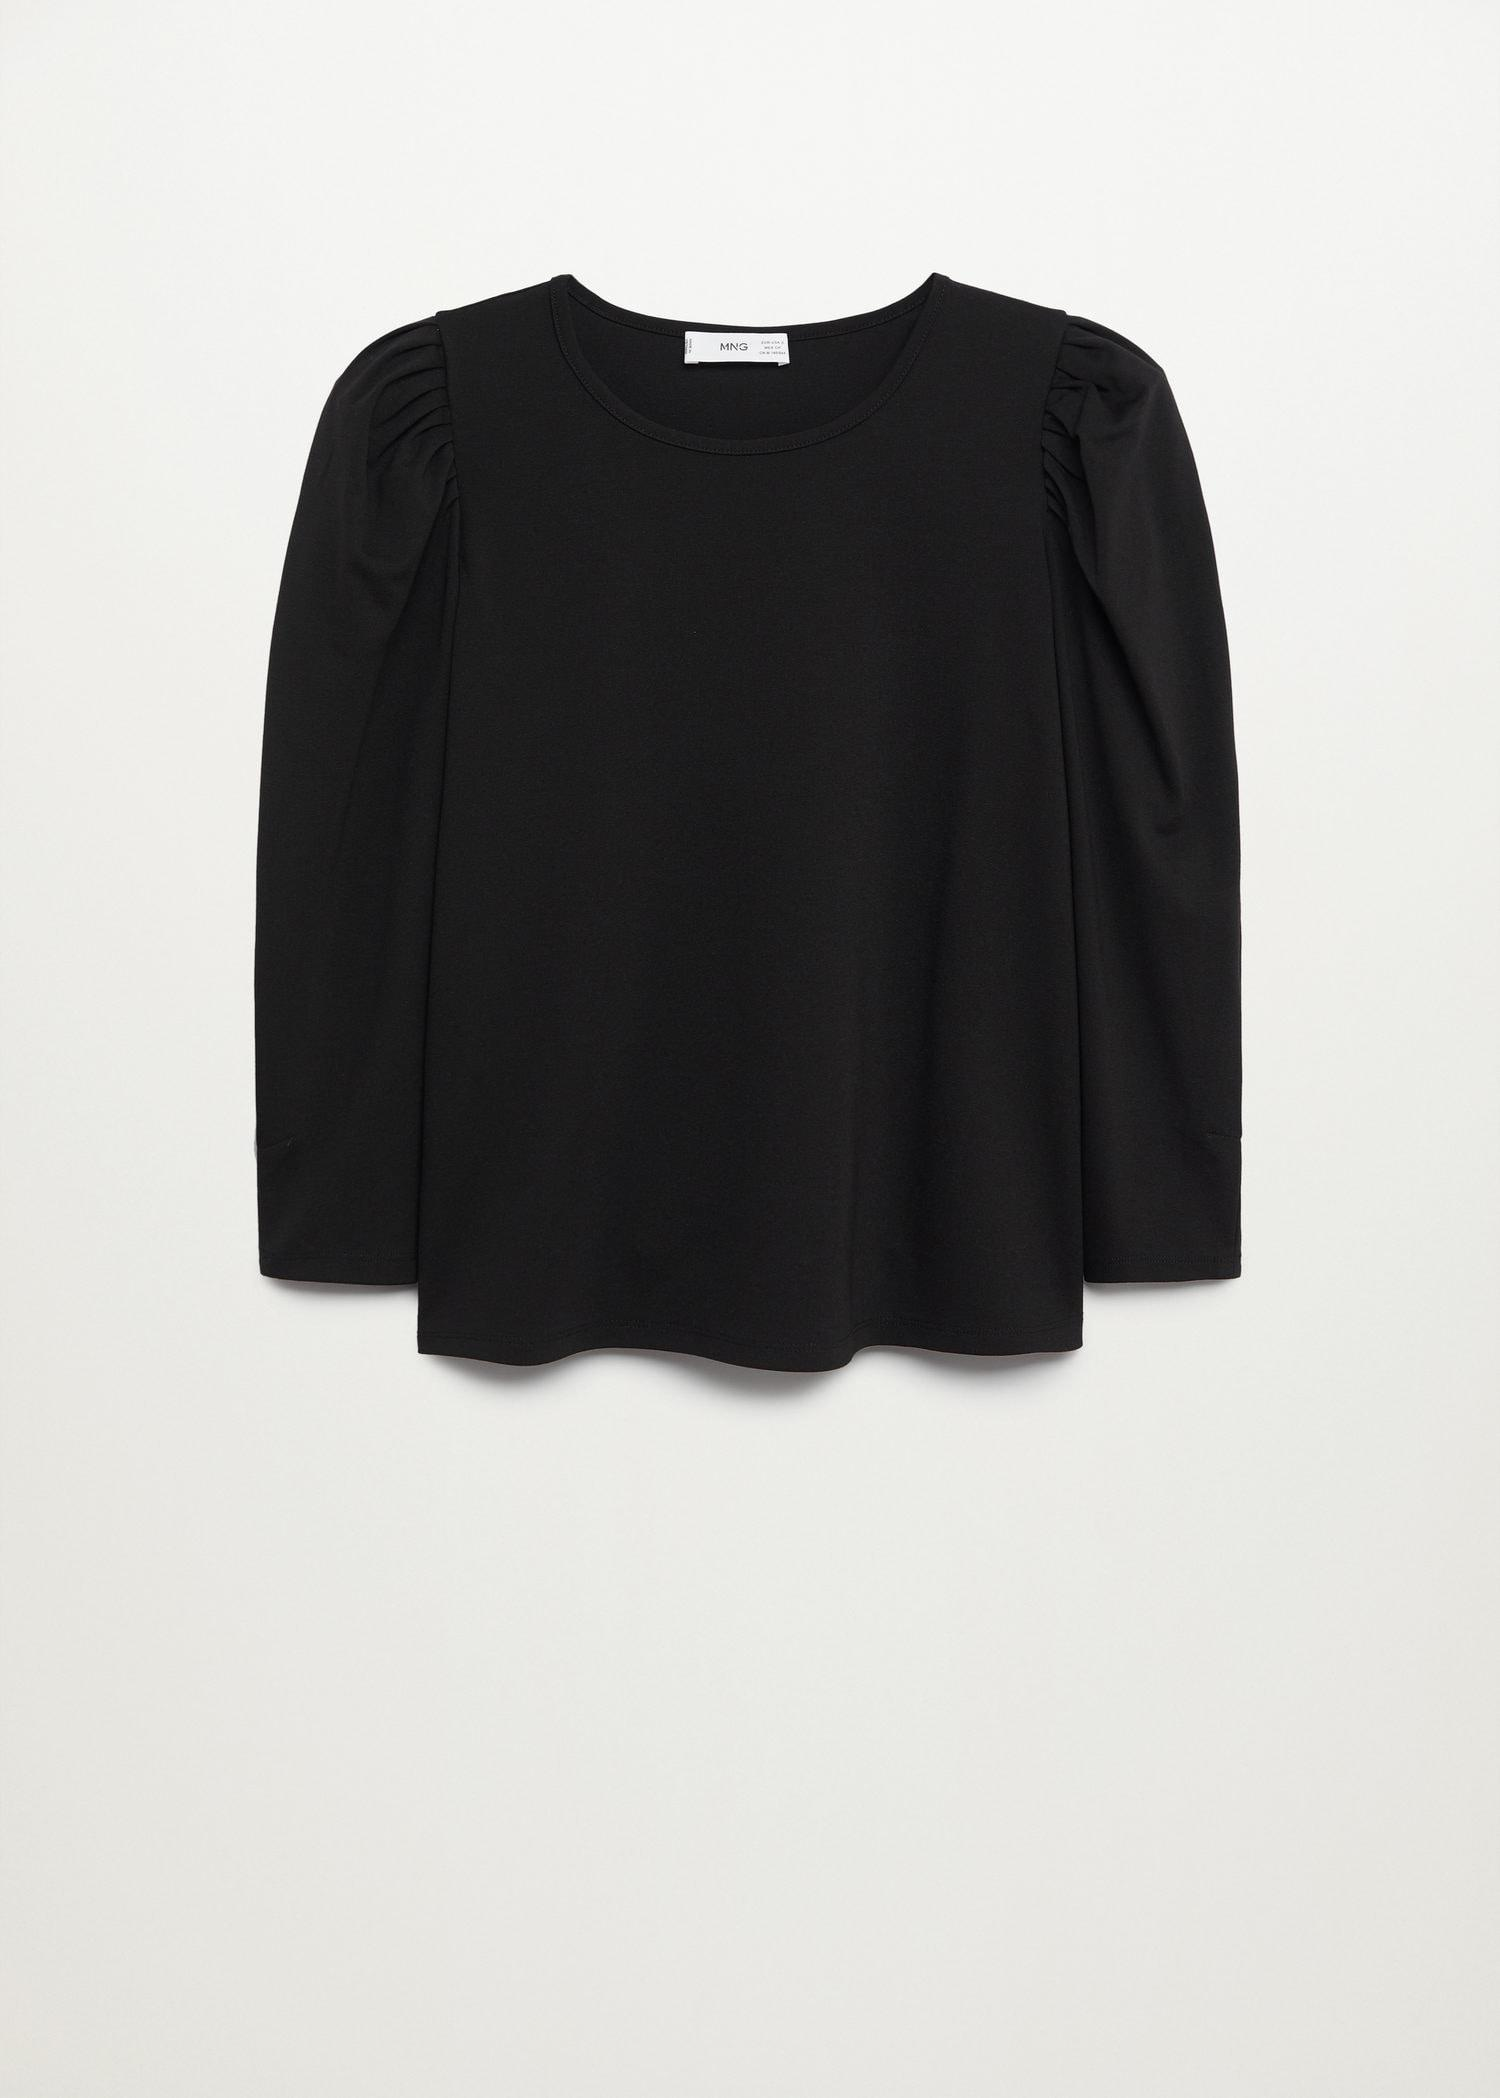 T-shirt with puffed sleeves 7